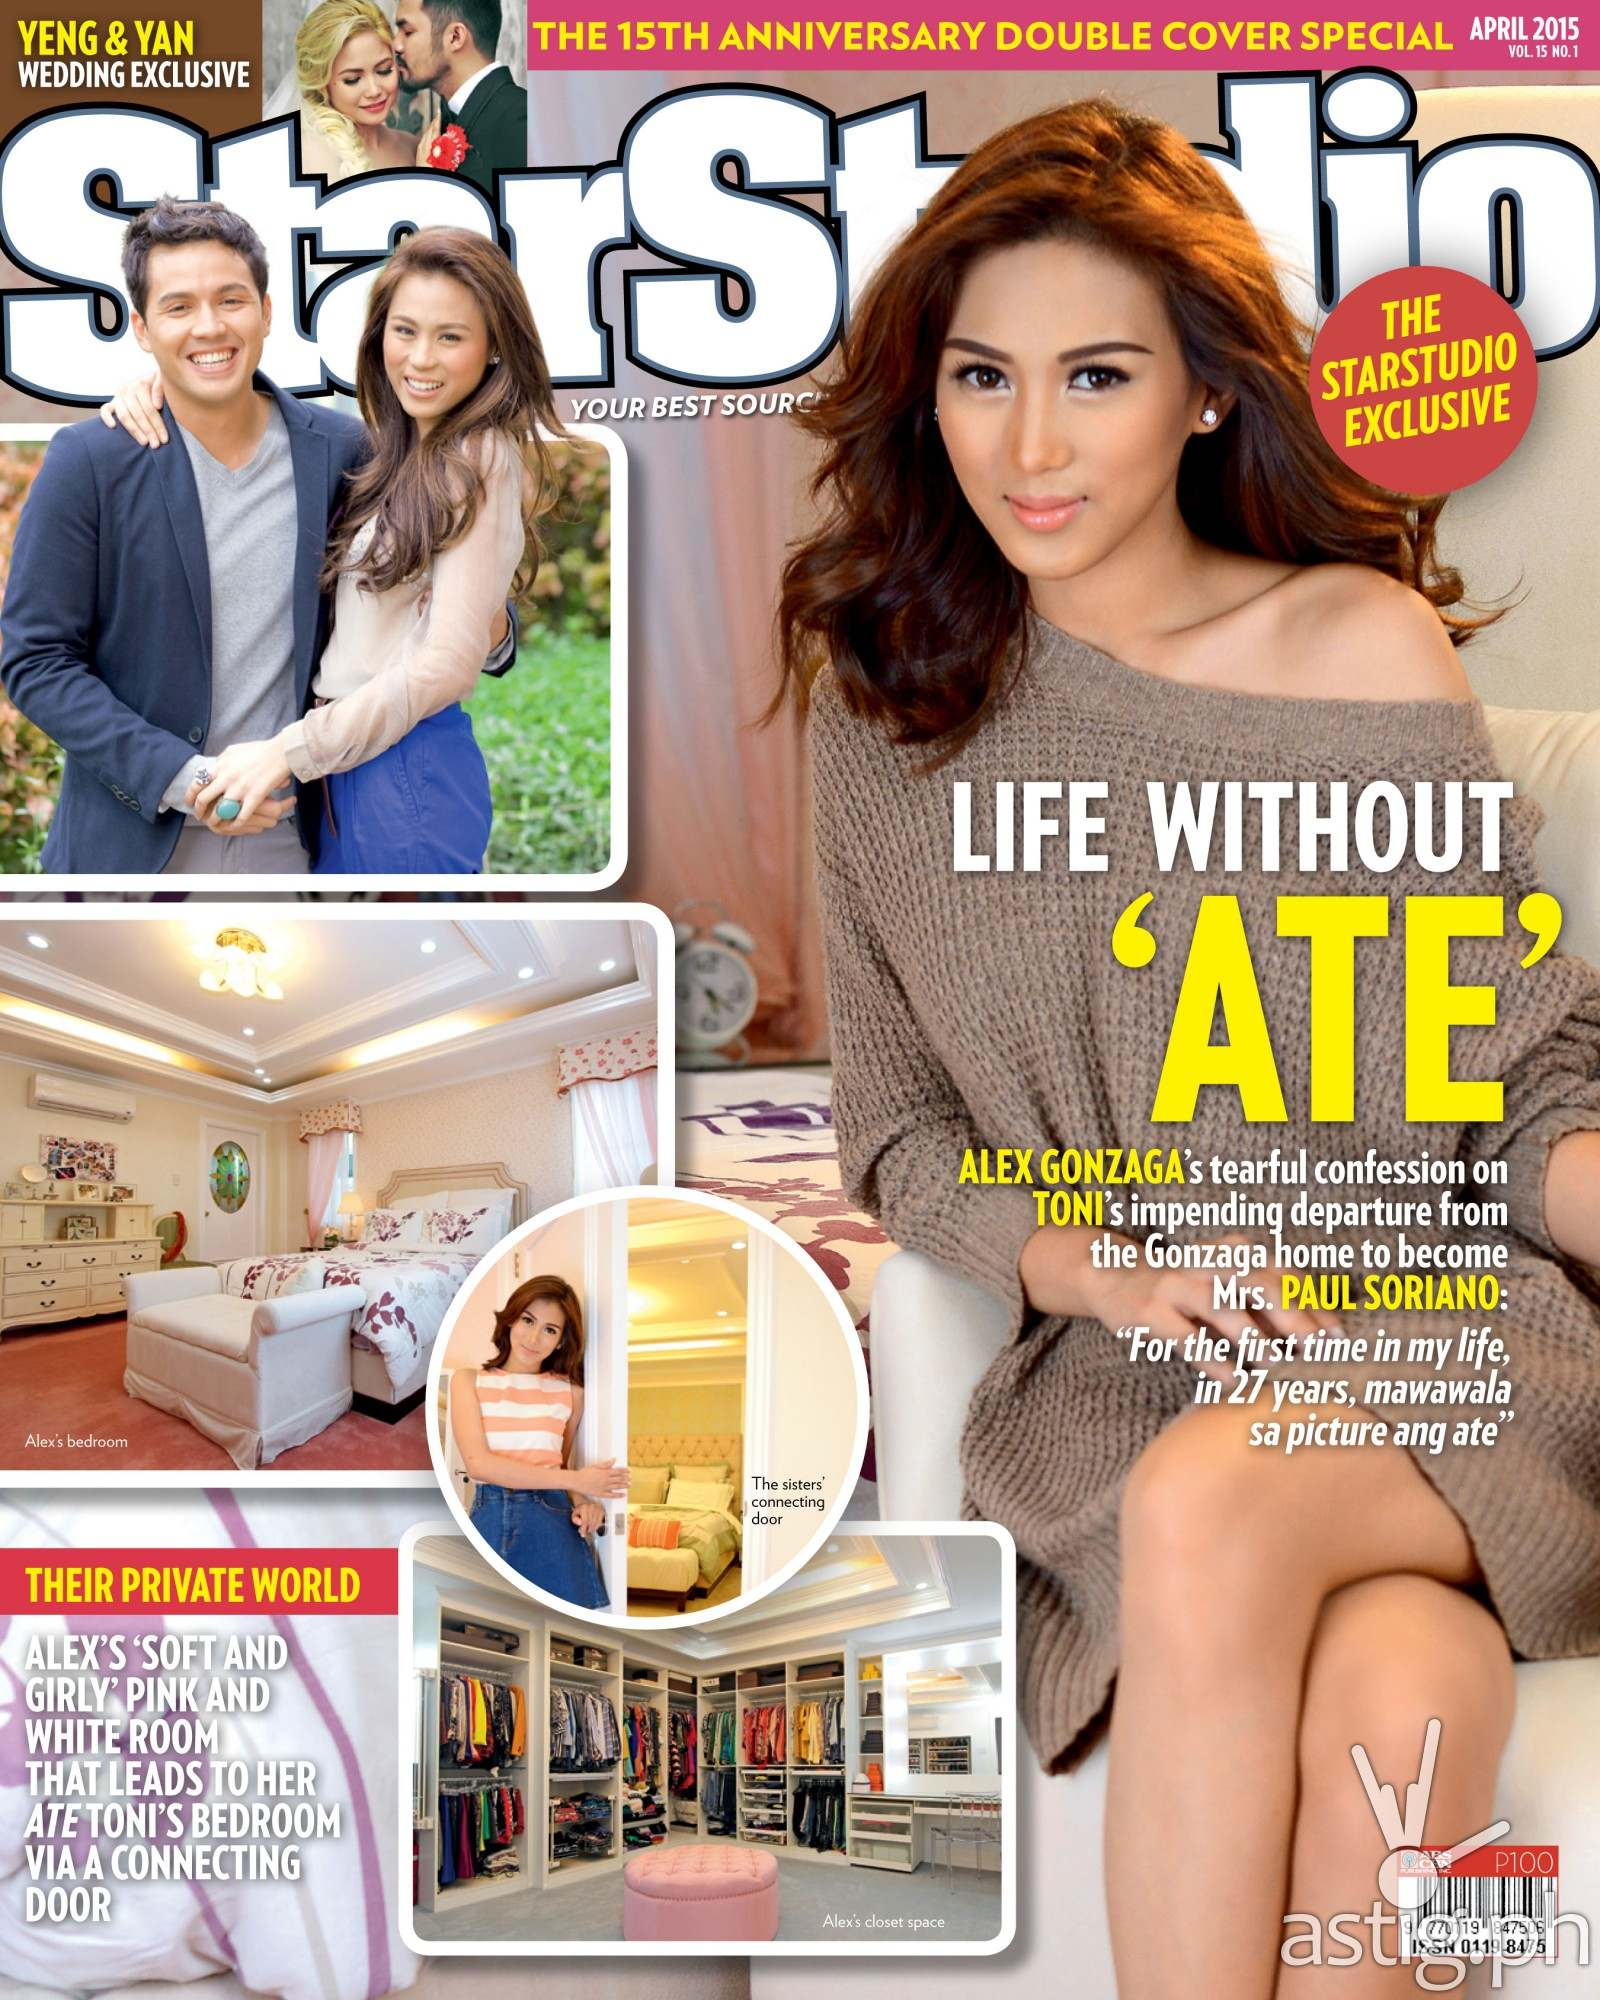 Alex Gonzaga Toni Gonzaga wedding Star Studio magazine April 2015 cover